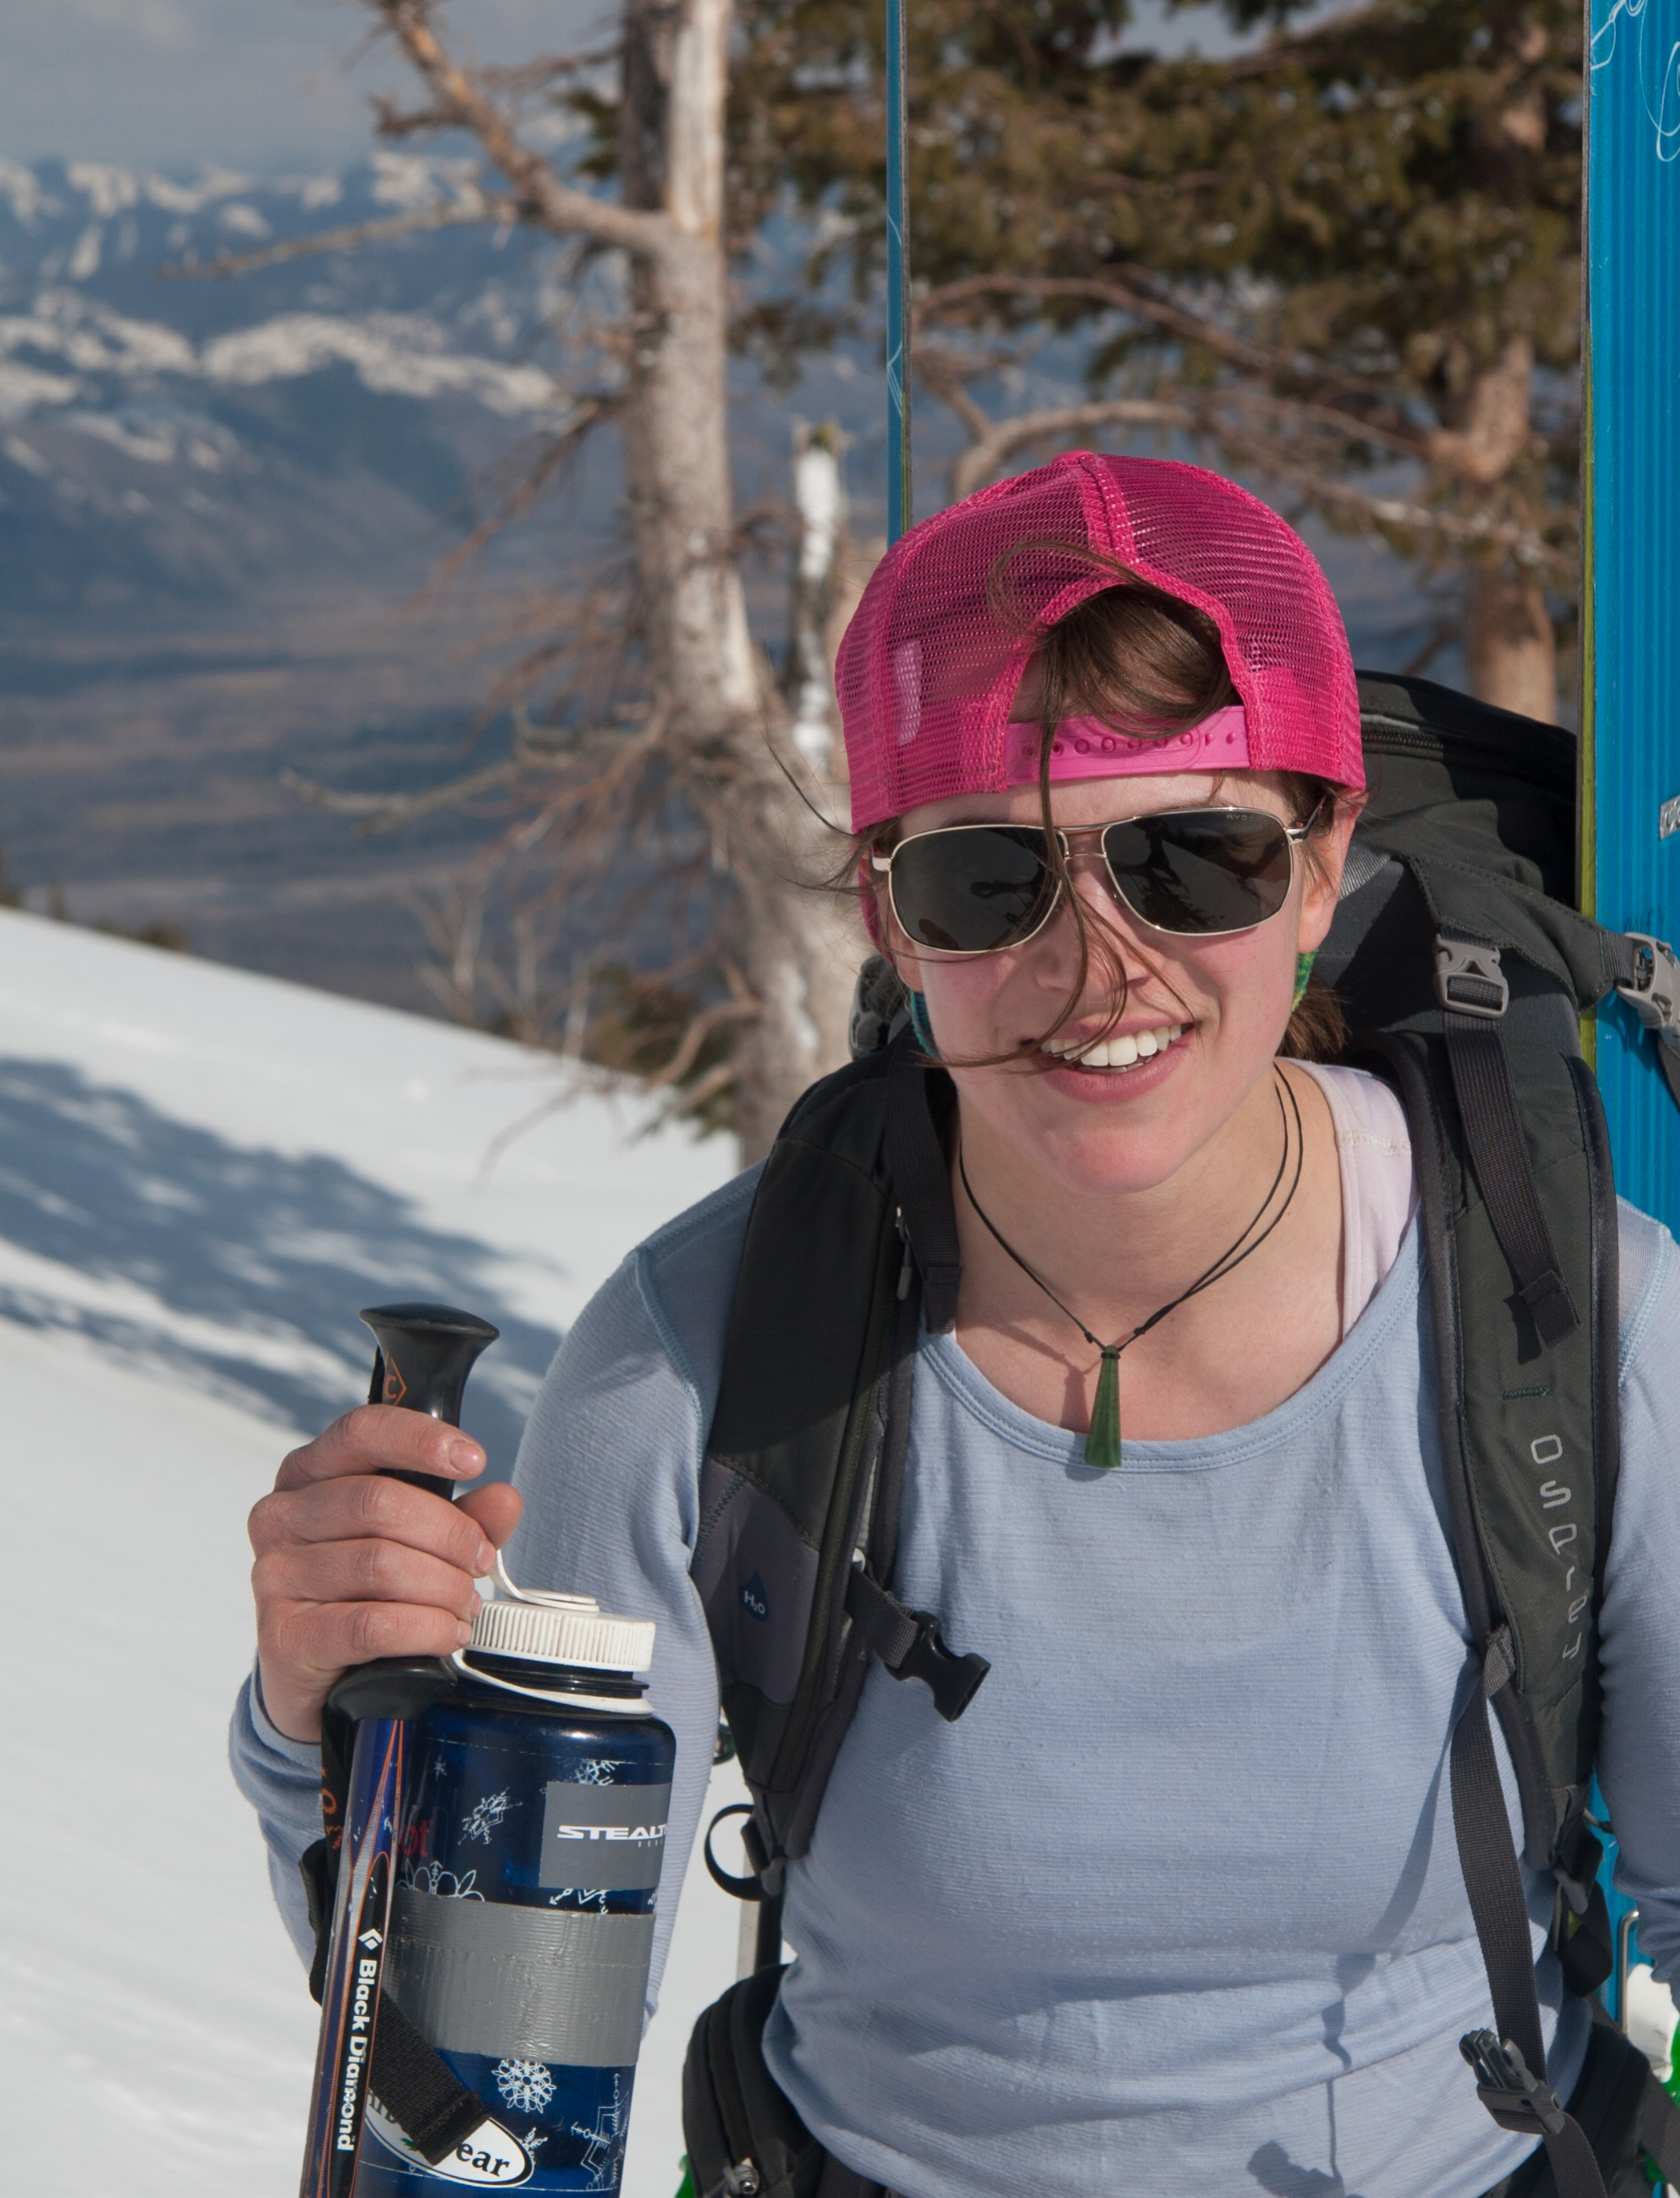 Founder Lorin paley taking a breather while skiing in the tetons.